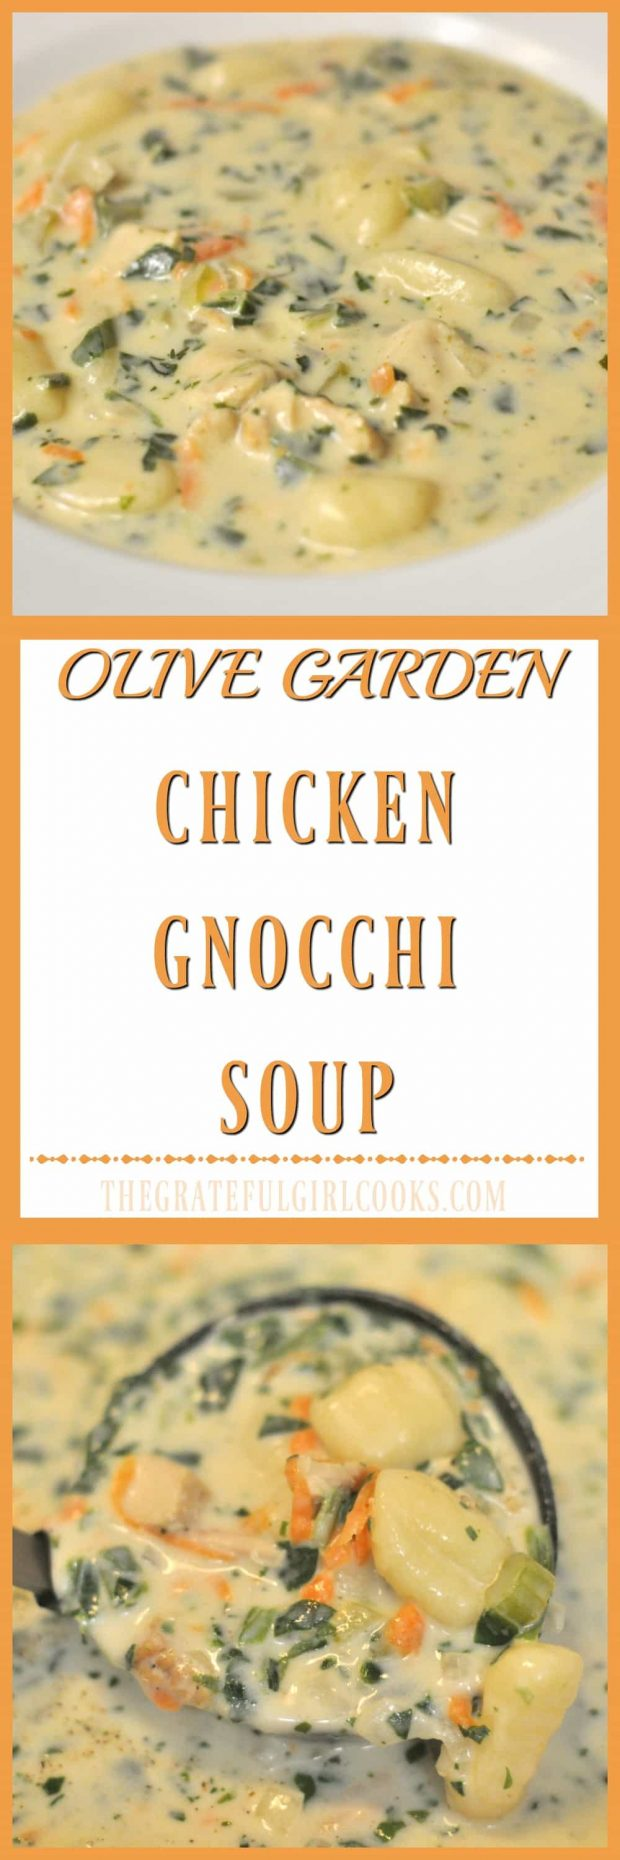 Long pin for copycat version of Olive Garden's chicken gnocchi soup